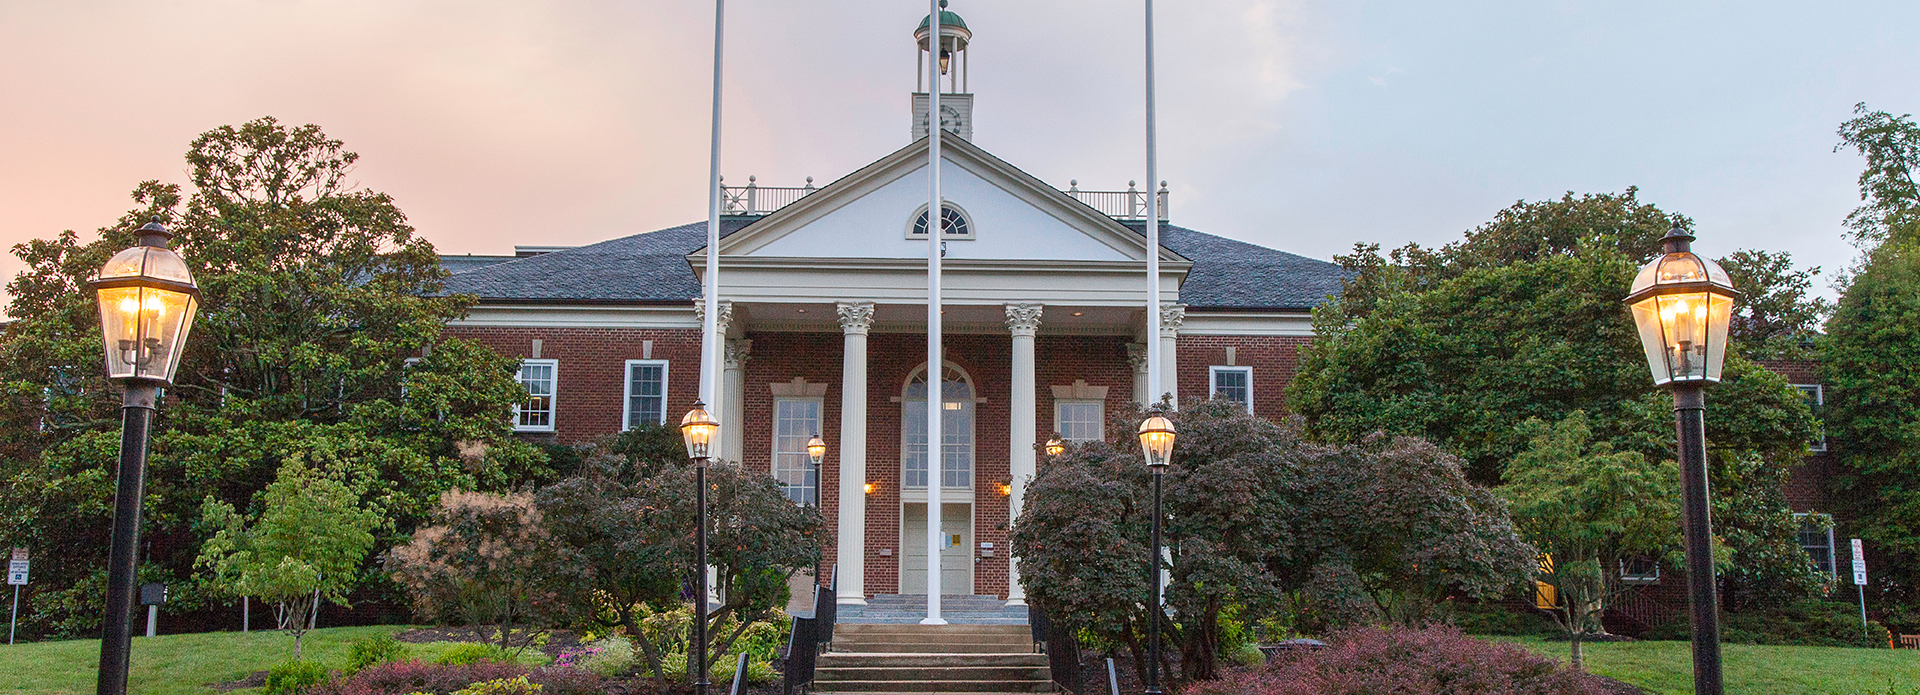 Fairfax City Hall